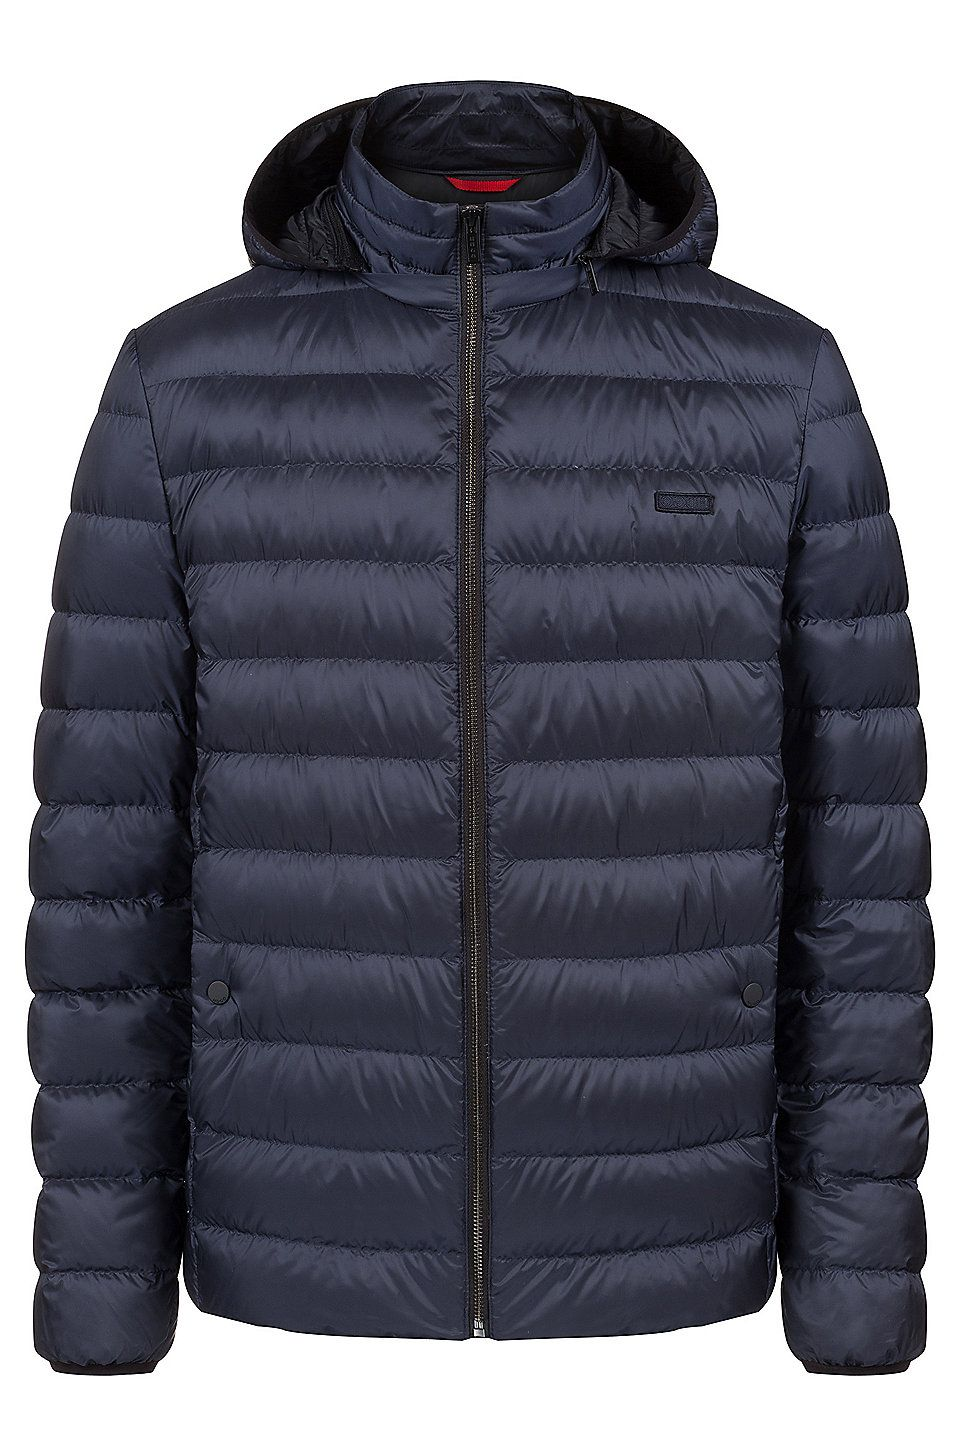 7daa495e70 HUGO BOSS Down jacket in water-repellent fabric with detachable hood - Dark  Blue Down Jackets from HUGO for Men in the official HUGO BOSS Online Store  free ...